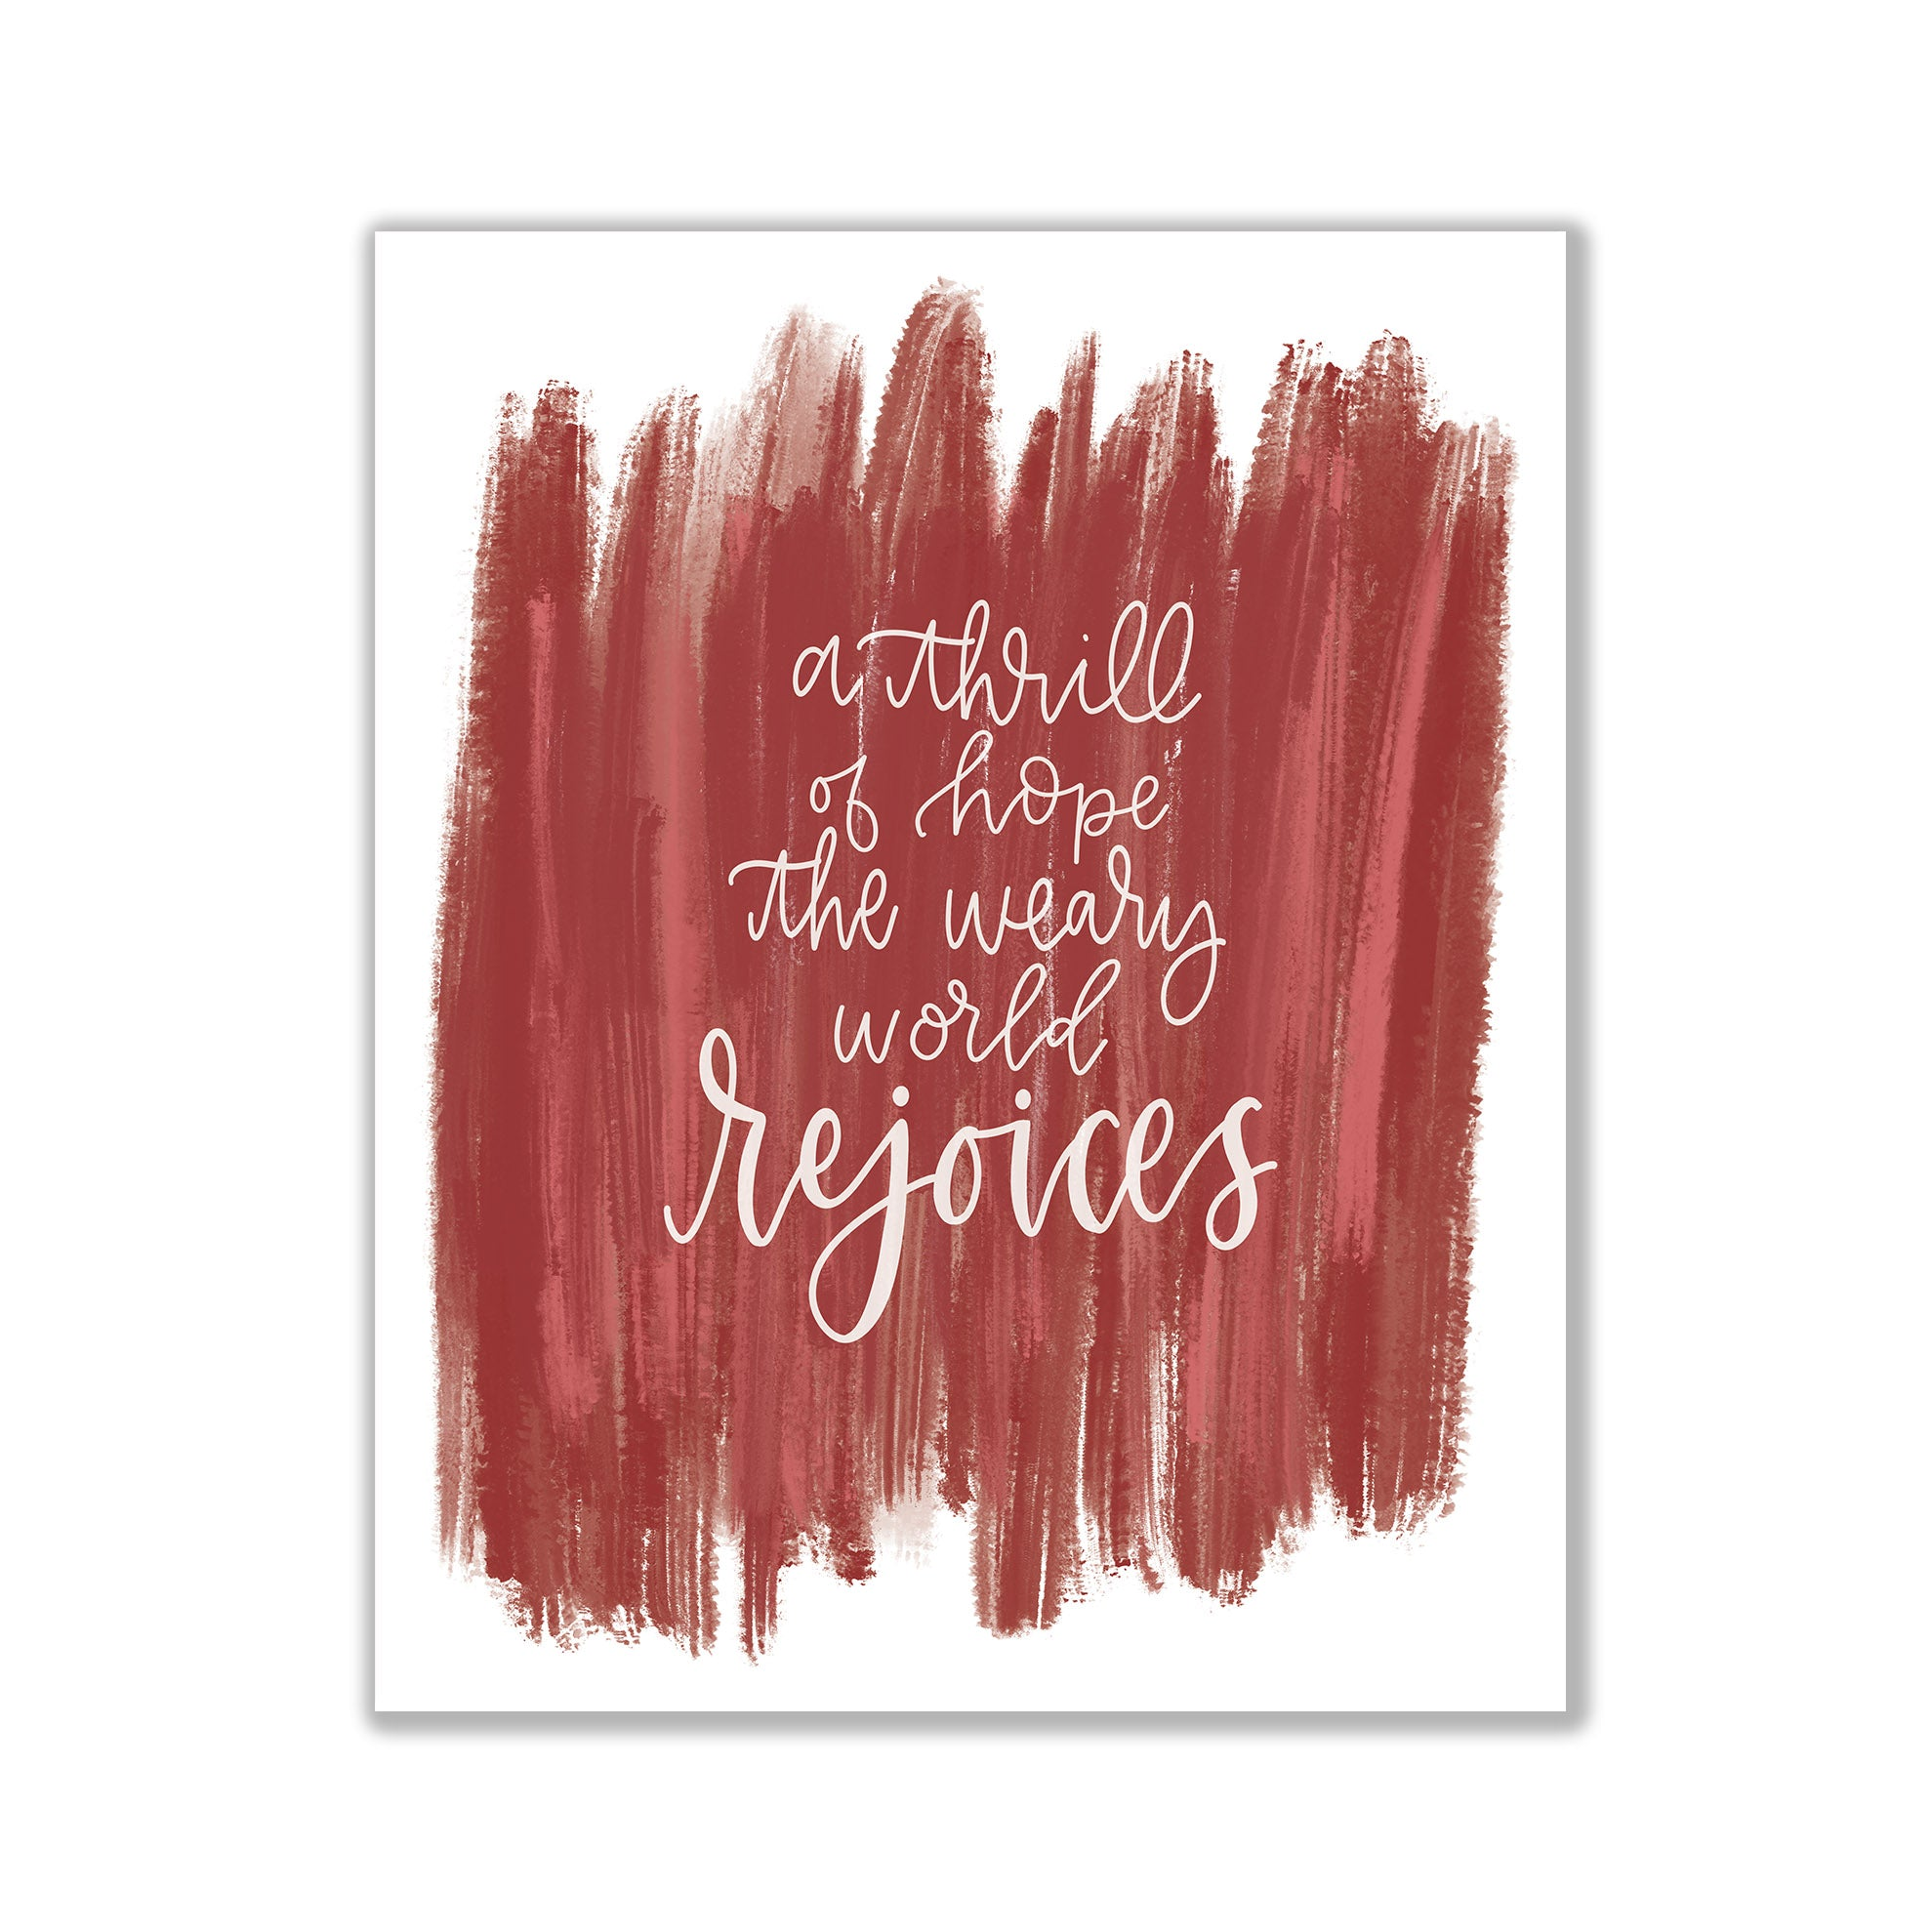 Christmas print hand lettered Christmas print Christmas art Christmas decorations Christmas decor the Christmas song Pittsburgh artist Pittsburgh art Pittsburgh calligraphy Pittsburgh calligrapher Pittsburgh Christmas art o holy night a thrill of hope the weary world rejoices print a thrill of hope decor